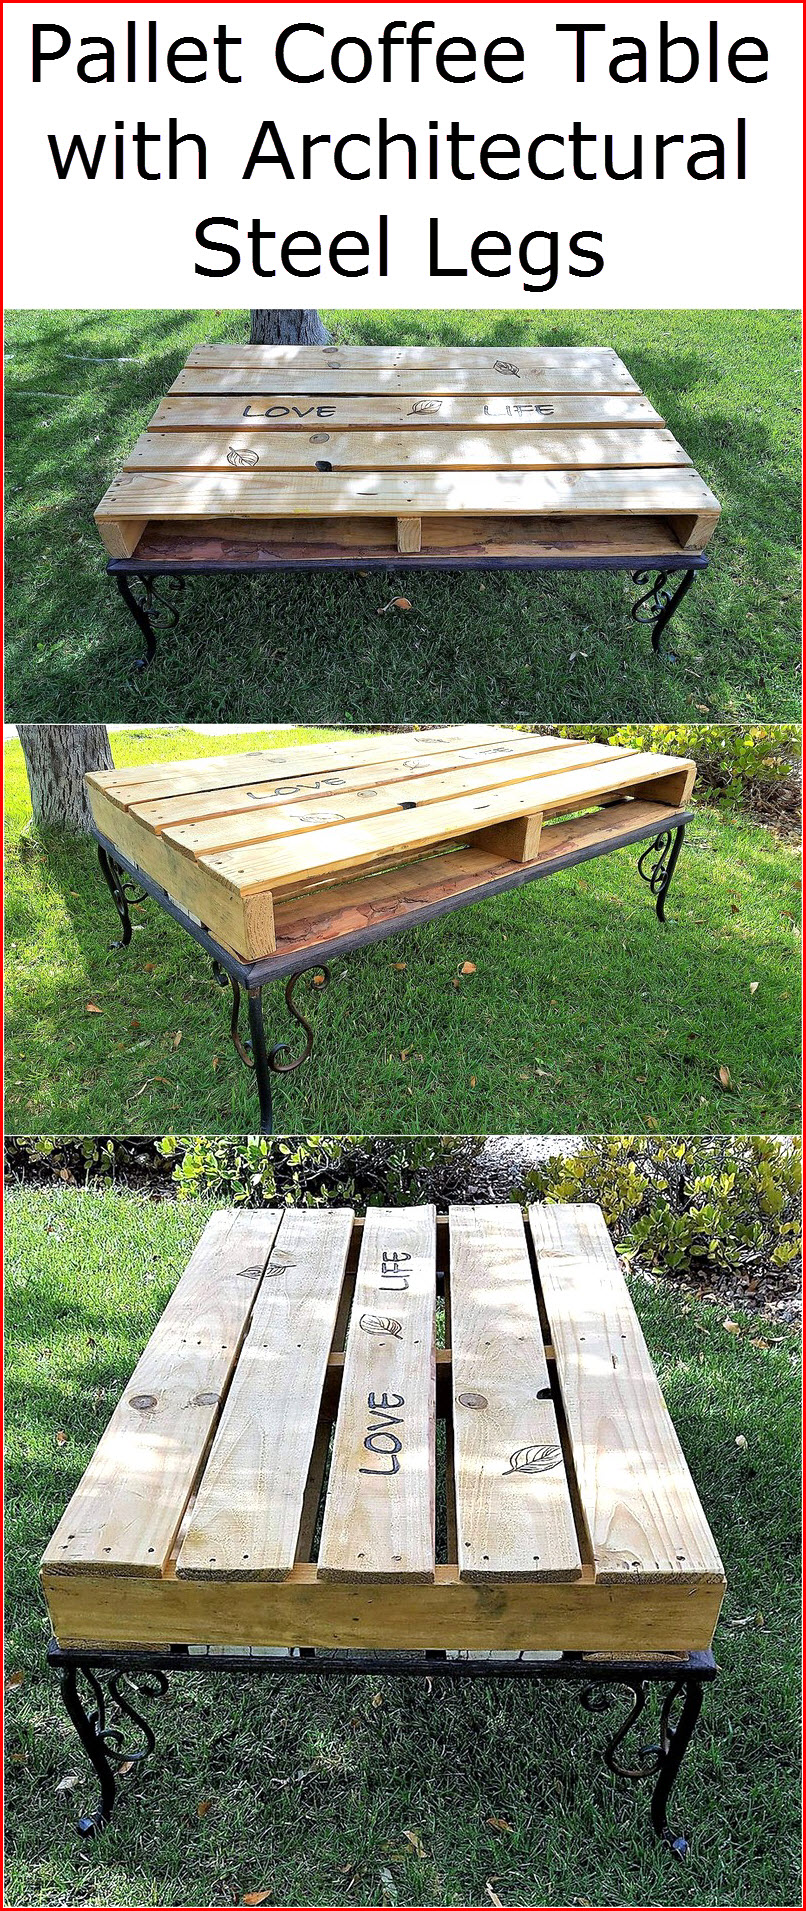 pallet-coffee-table-with-architectural-steel-legs